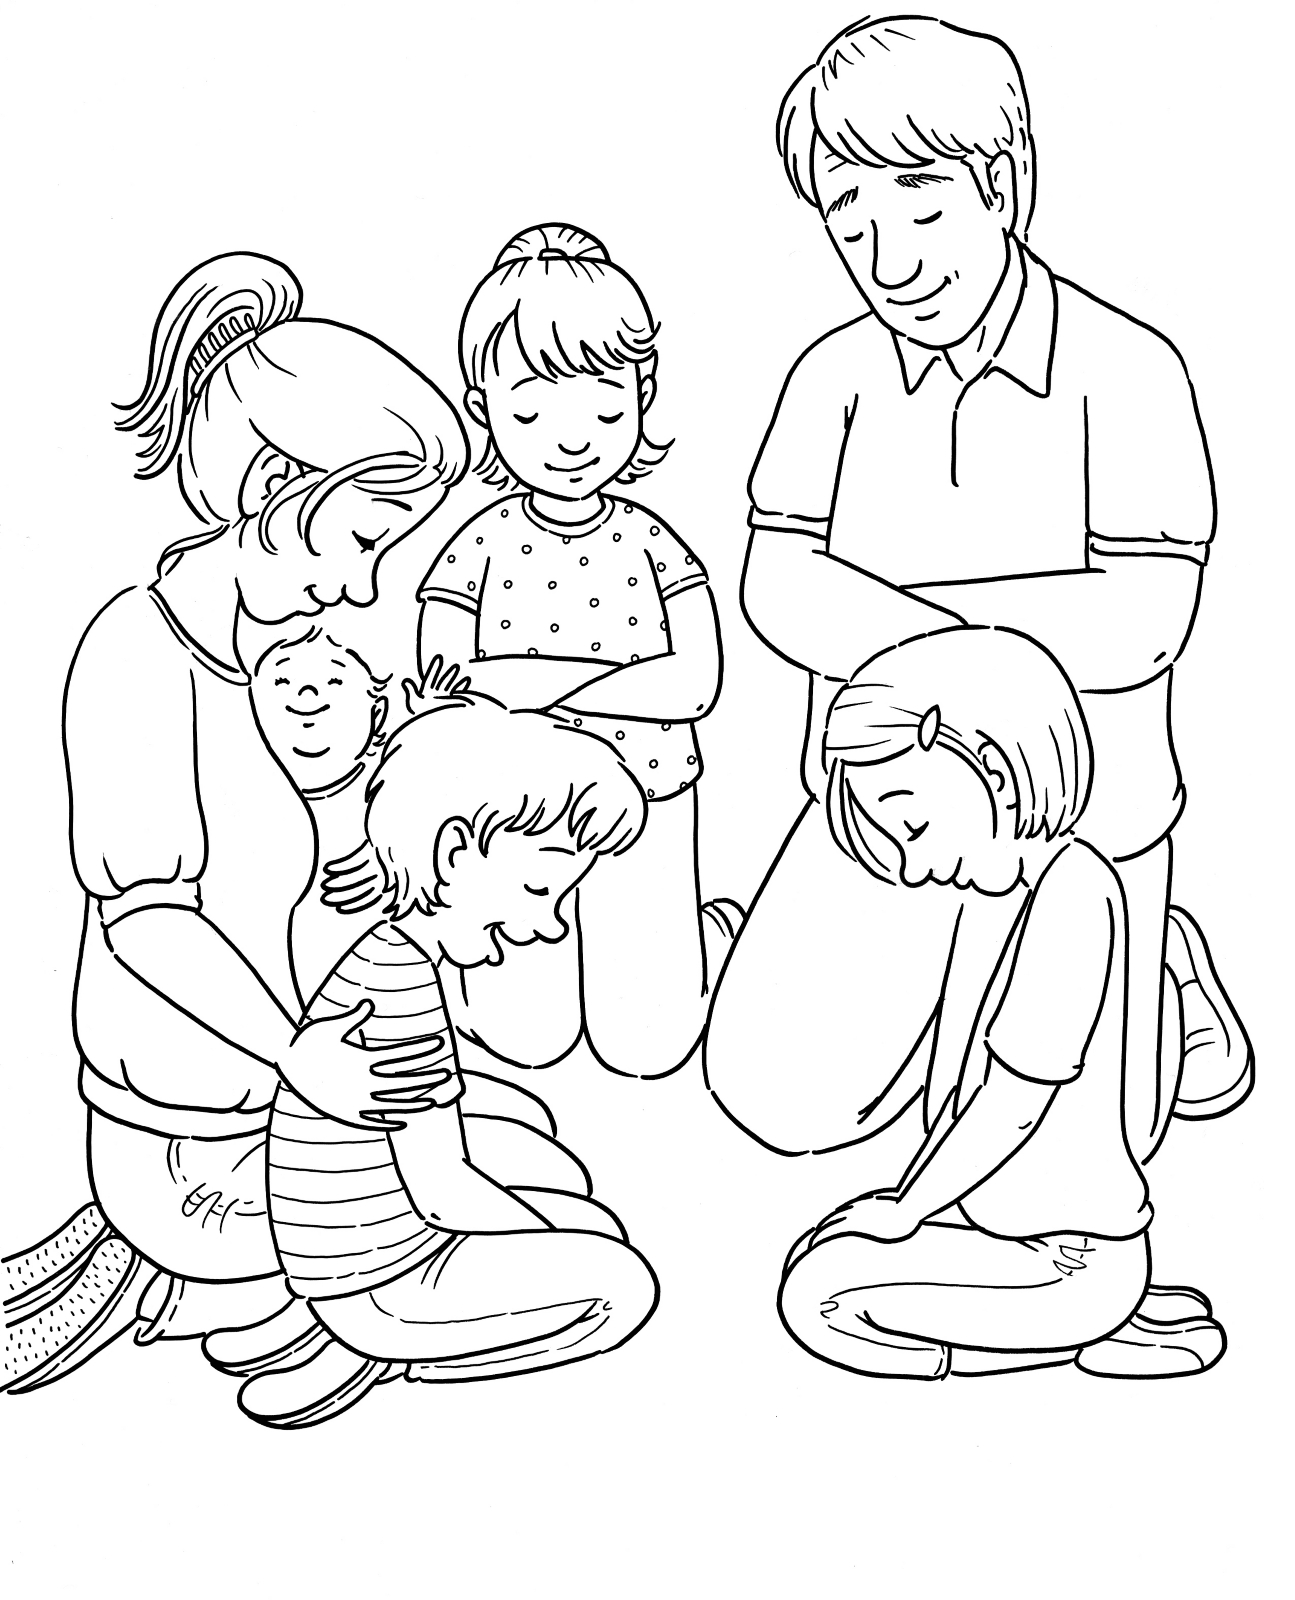 share - Primary Coloring Pages